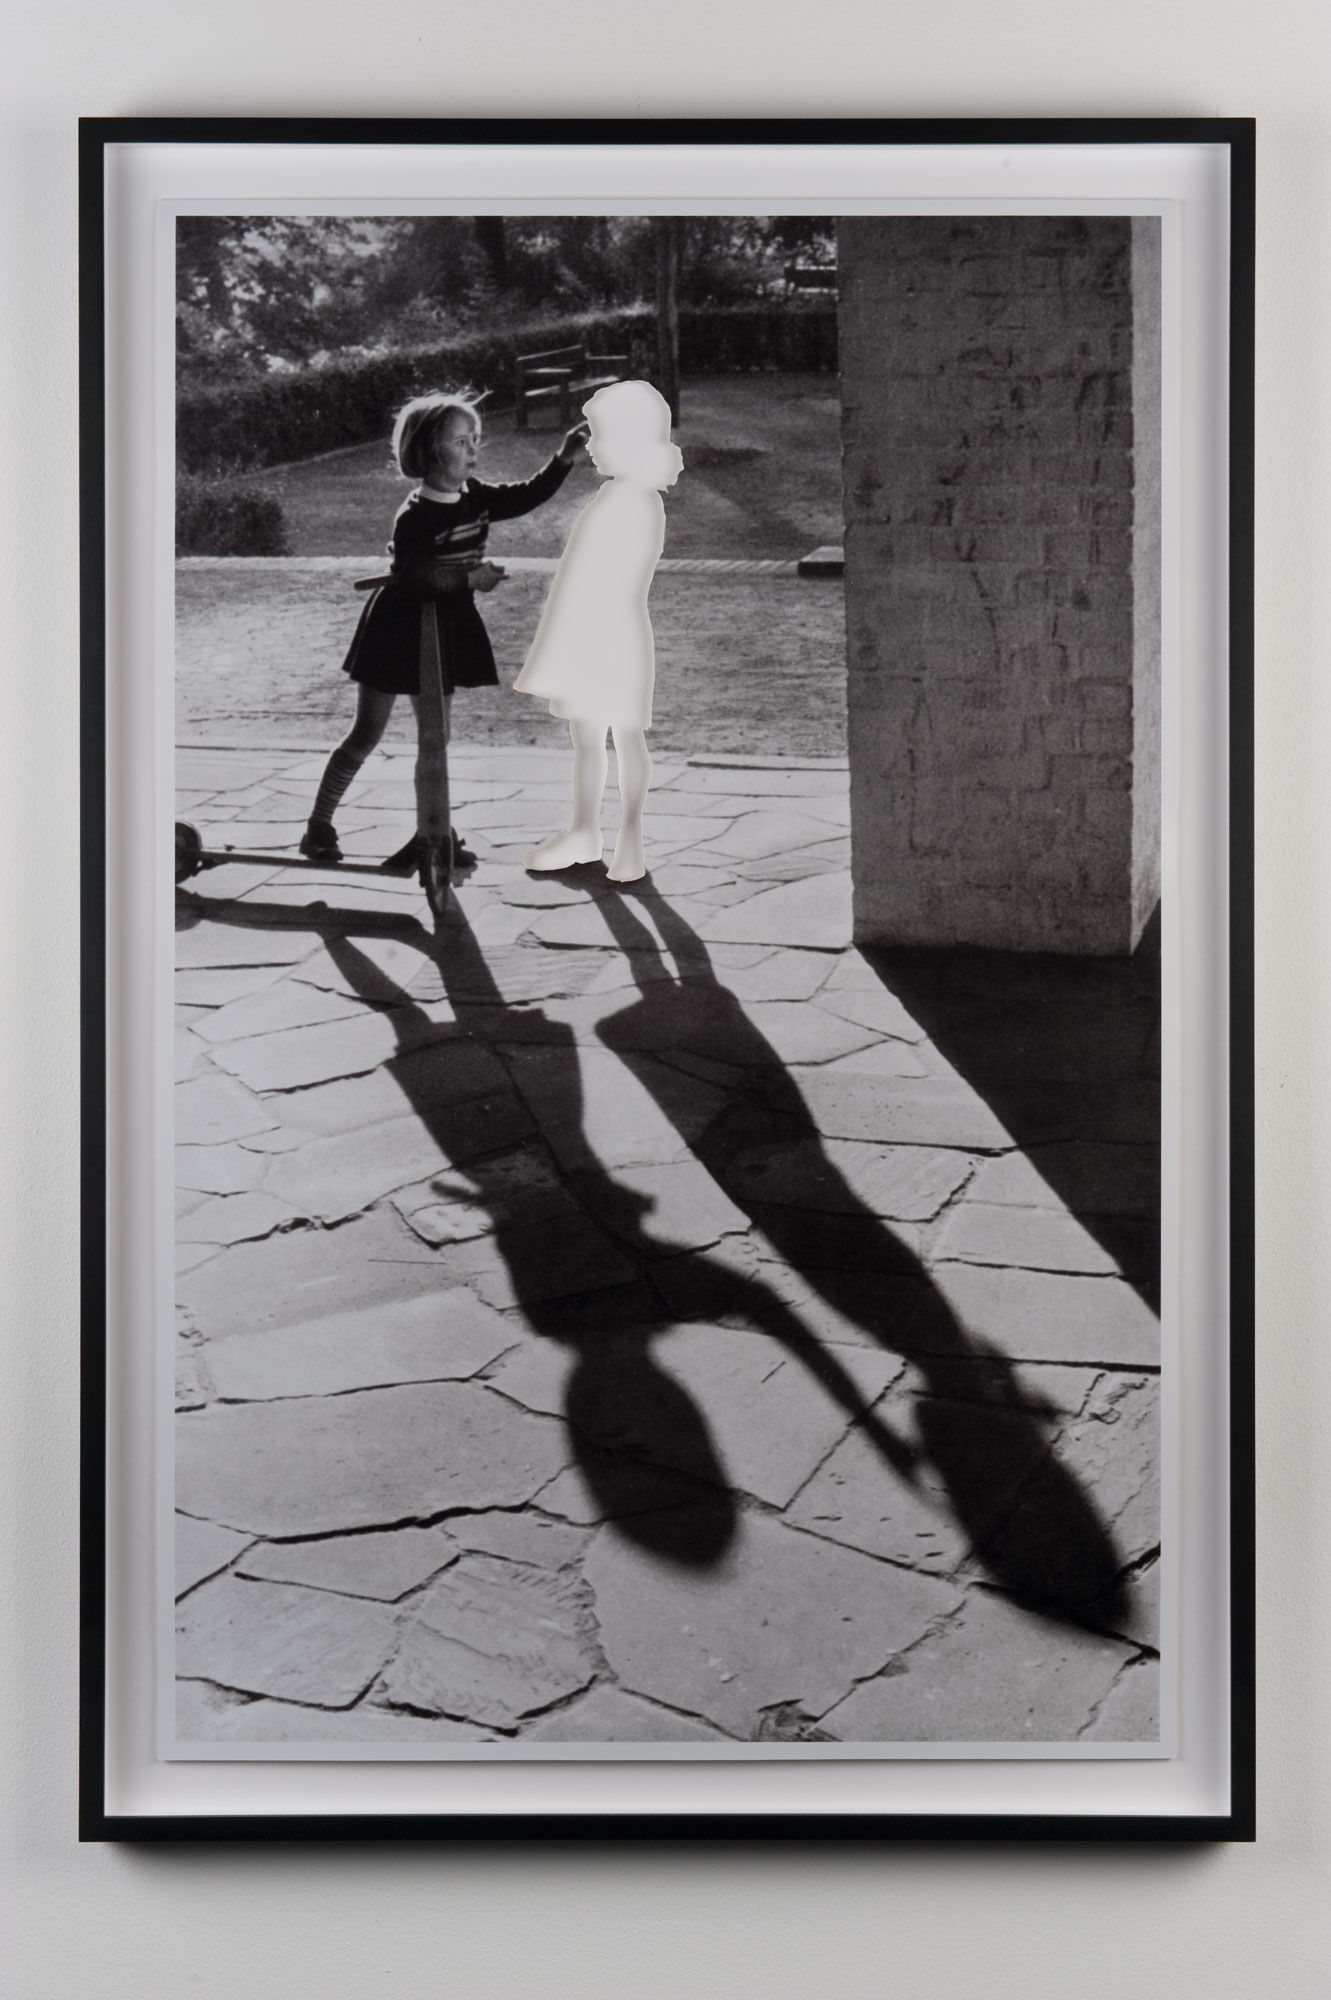 Hans Peter Feldmann, Two Girls with Shadow, 1999, 48.3x46.